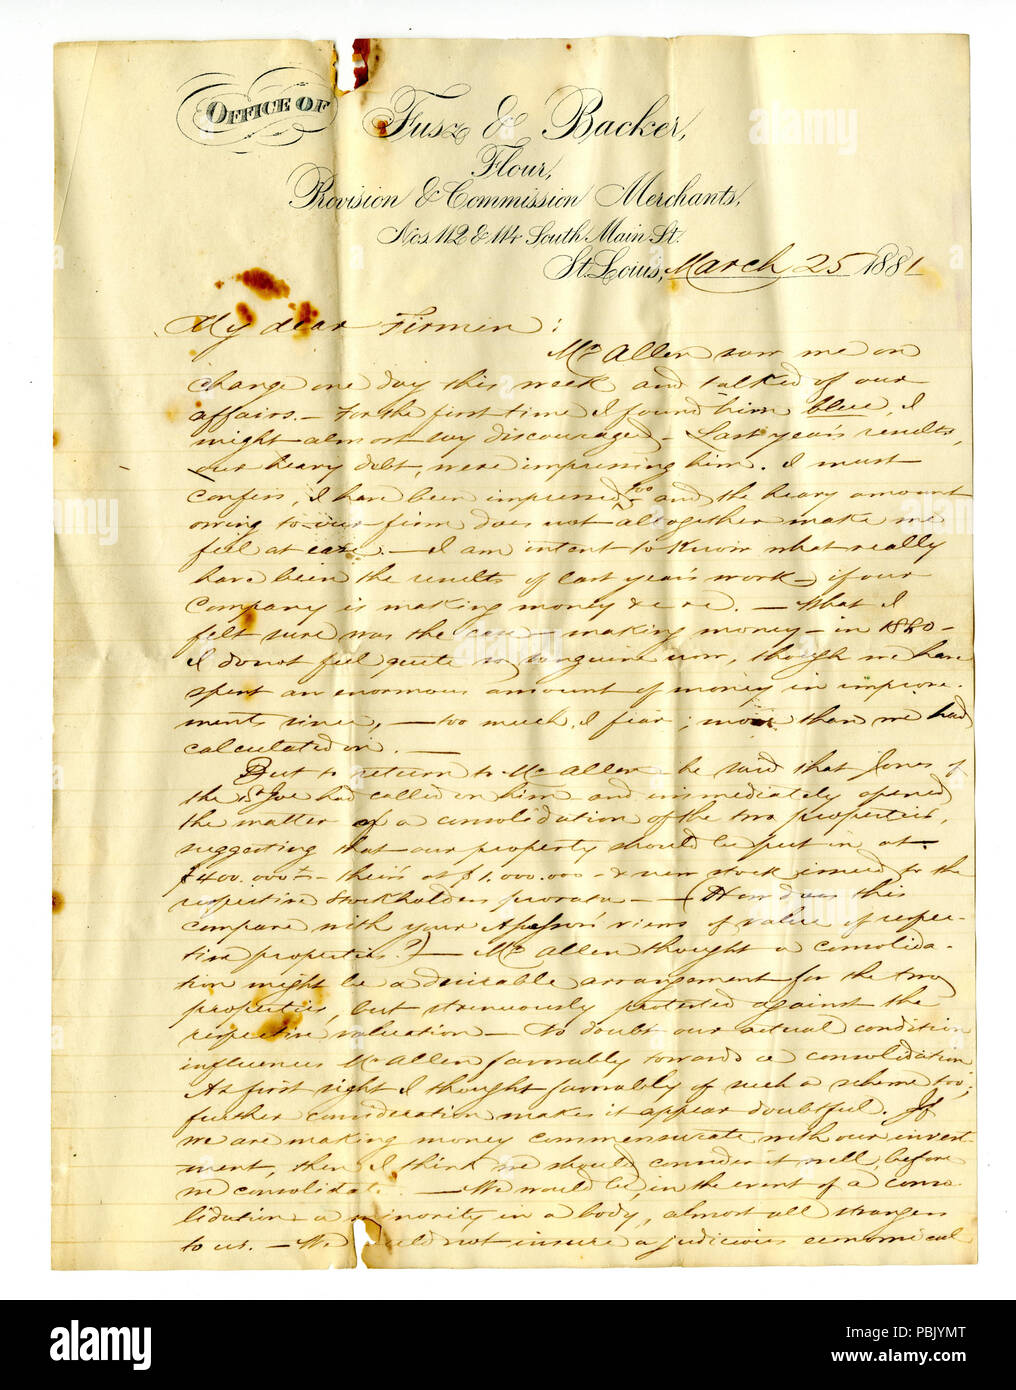 910 Letter signed Louis Fusz, Fusz and Backer, Flour, Provision and Commission Merchants, March 25, 1881 - Stock Image